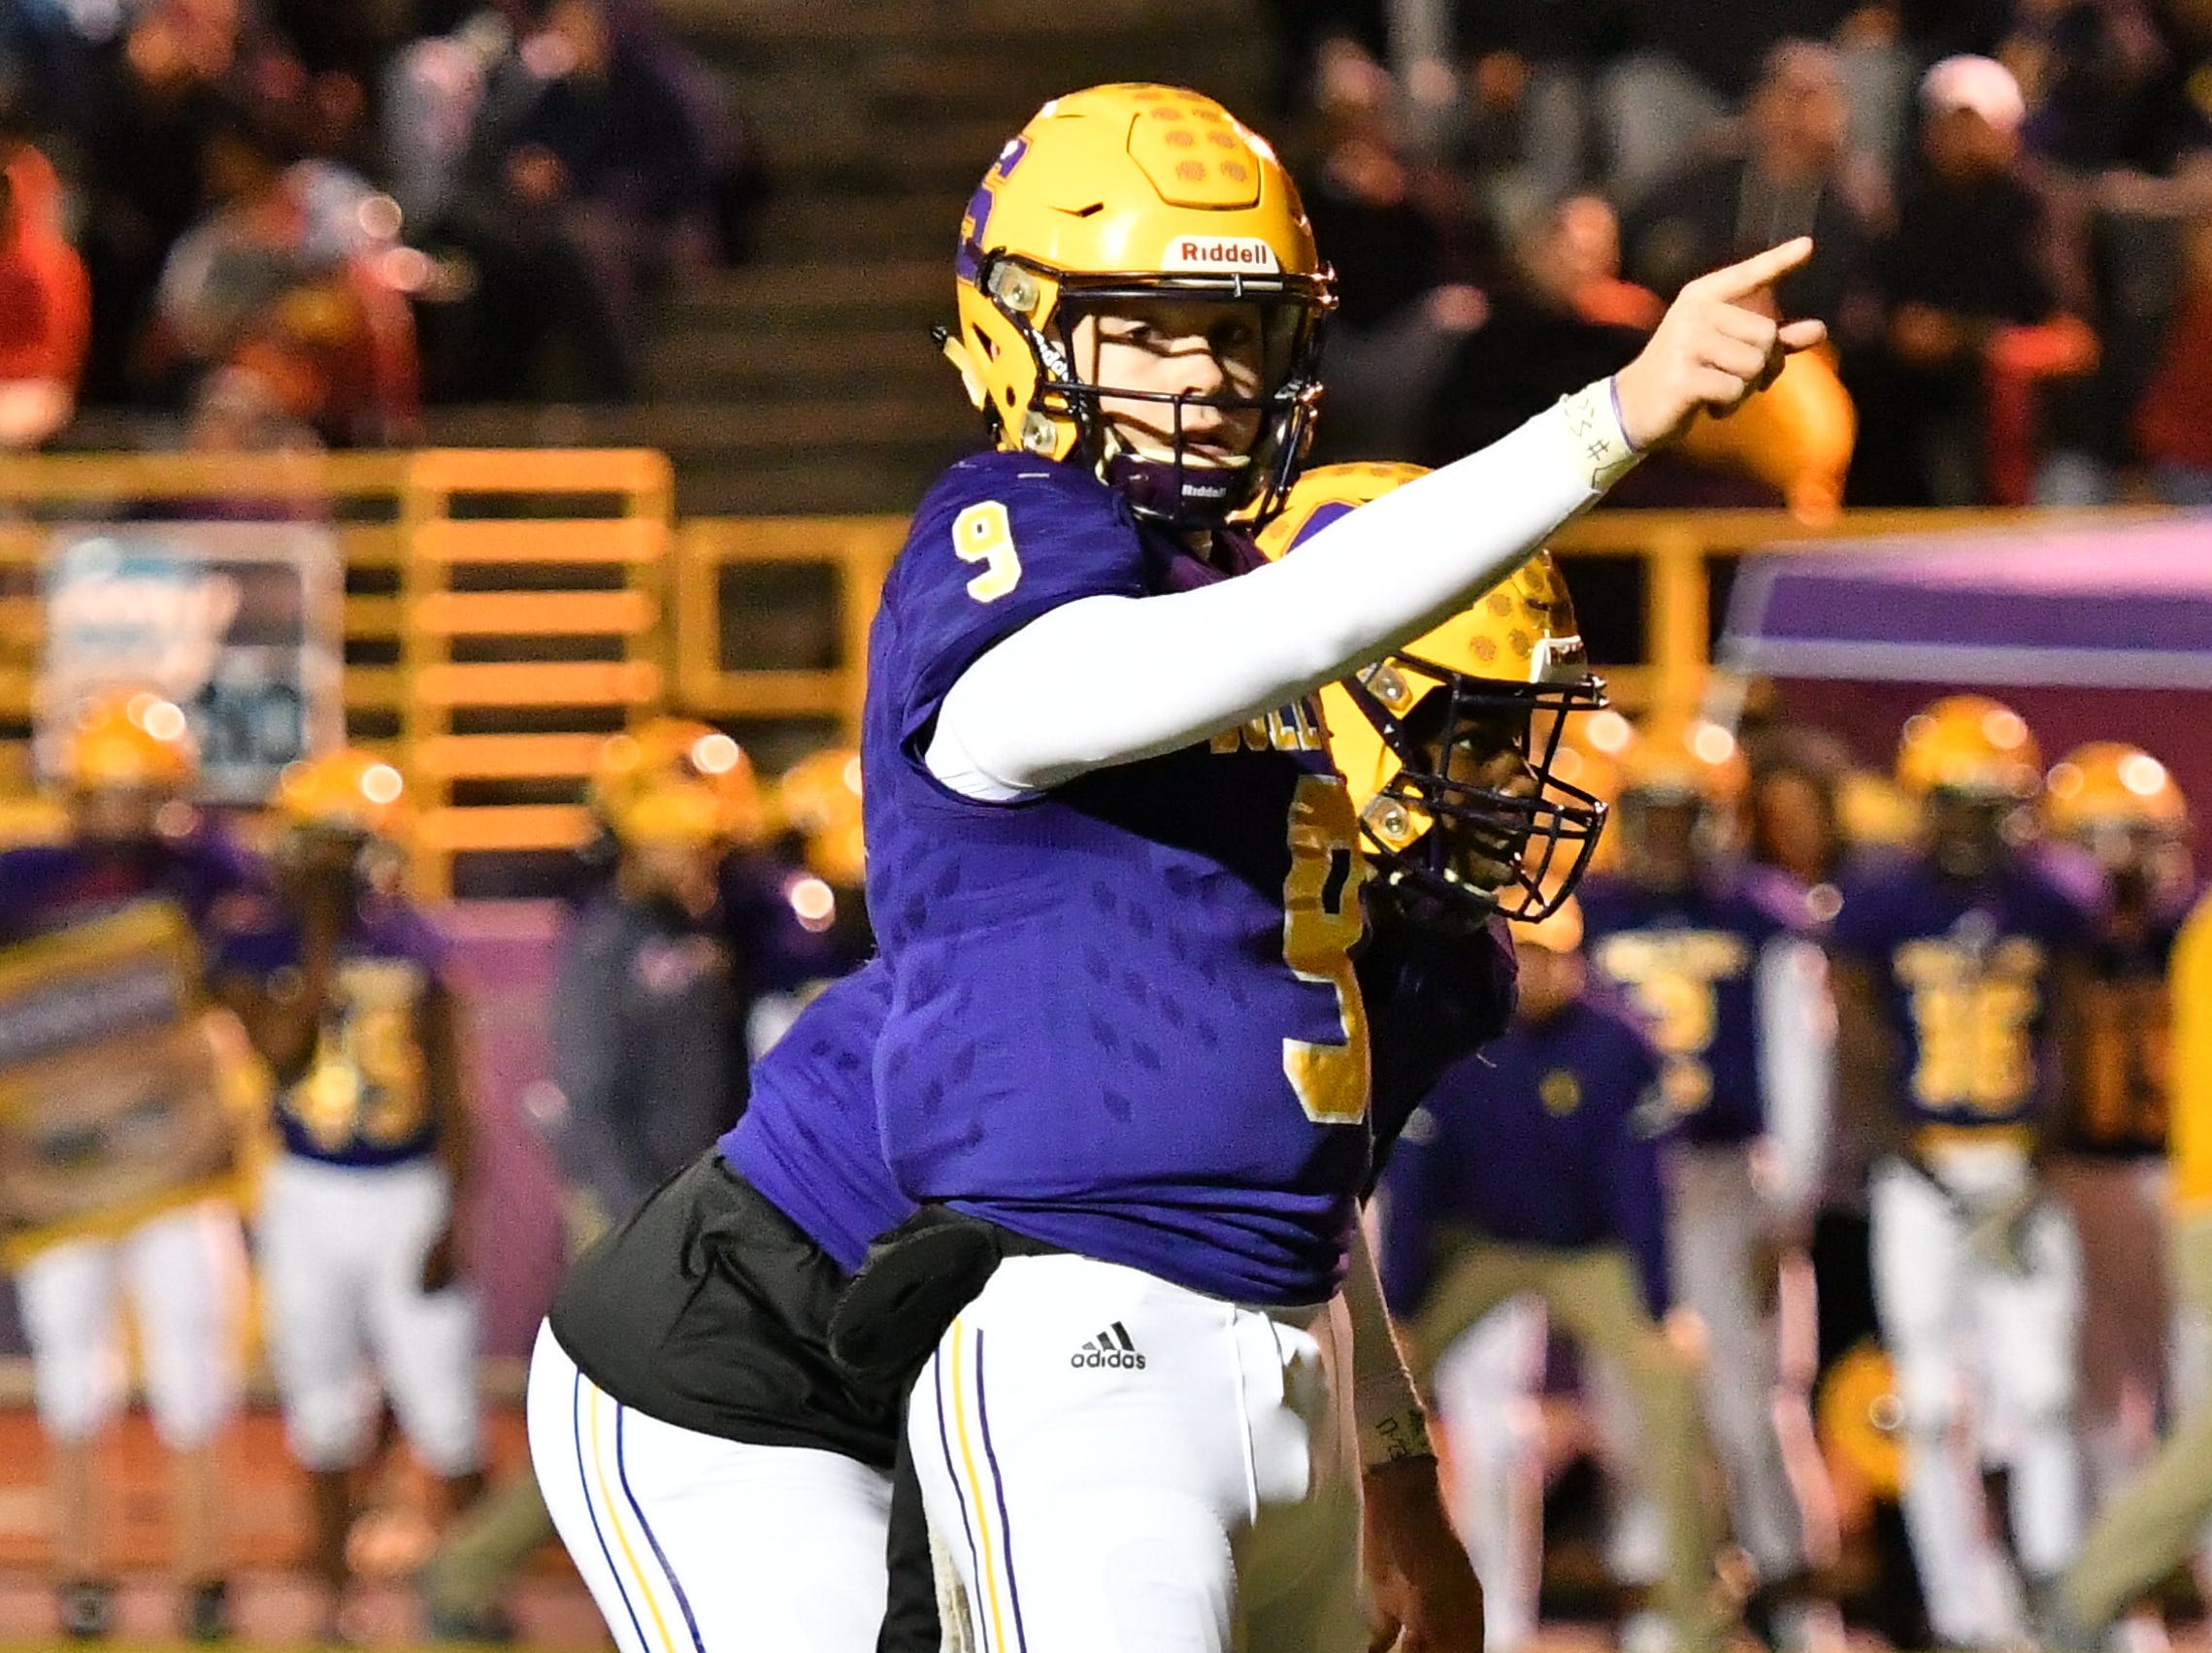 Smyrna QB Alex Bannister signals a play during Friday's 33-14 loss to Independence.